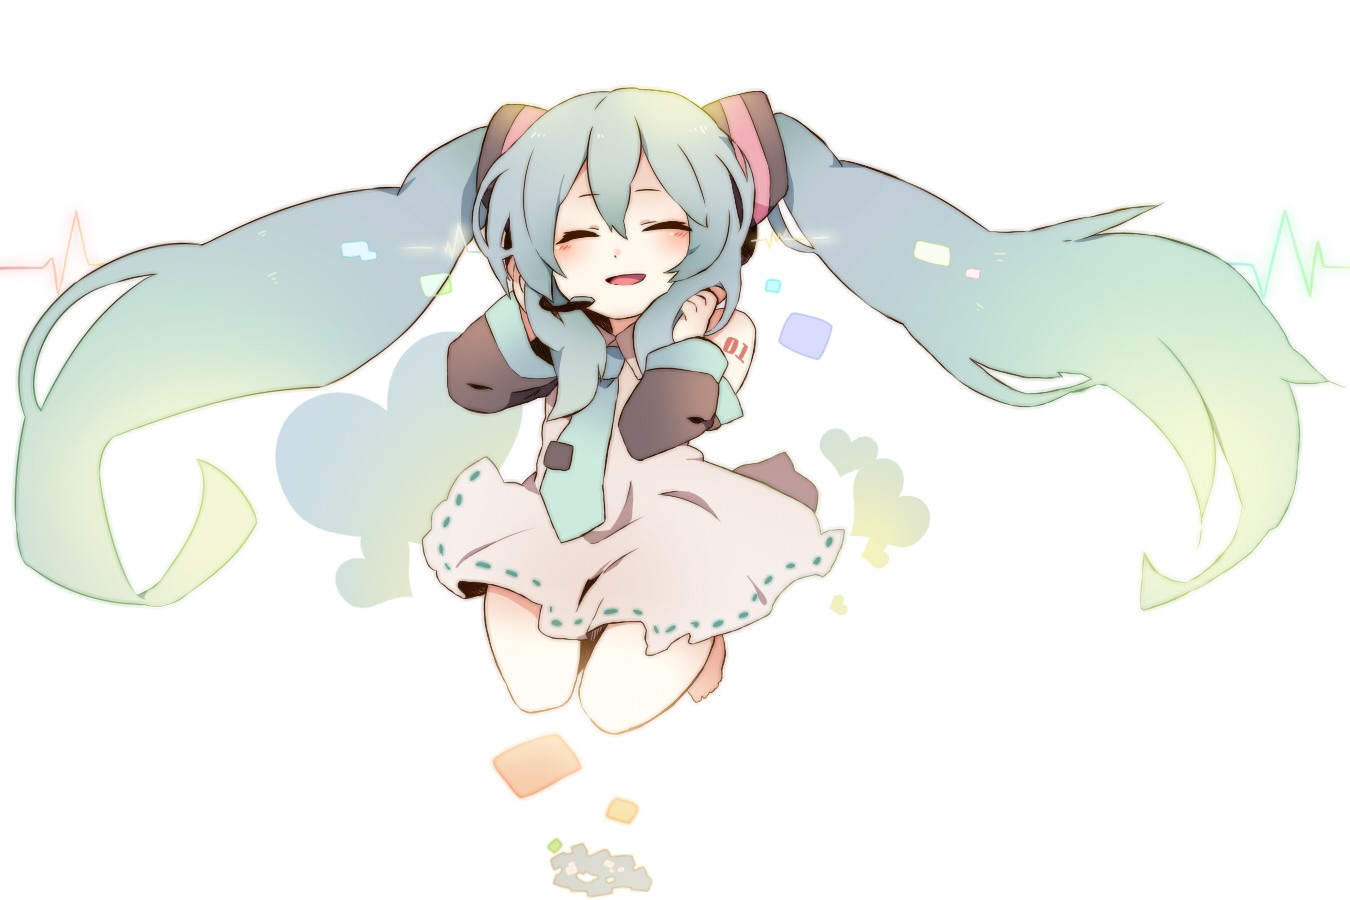 blue_hair dress hatsune_miku kokoroa loli long_hair tie twintails vocaloid white